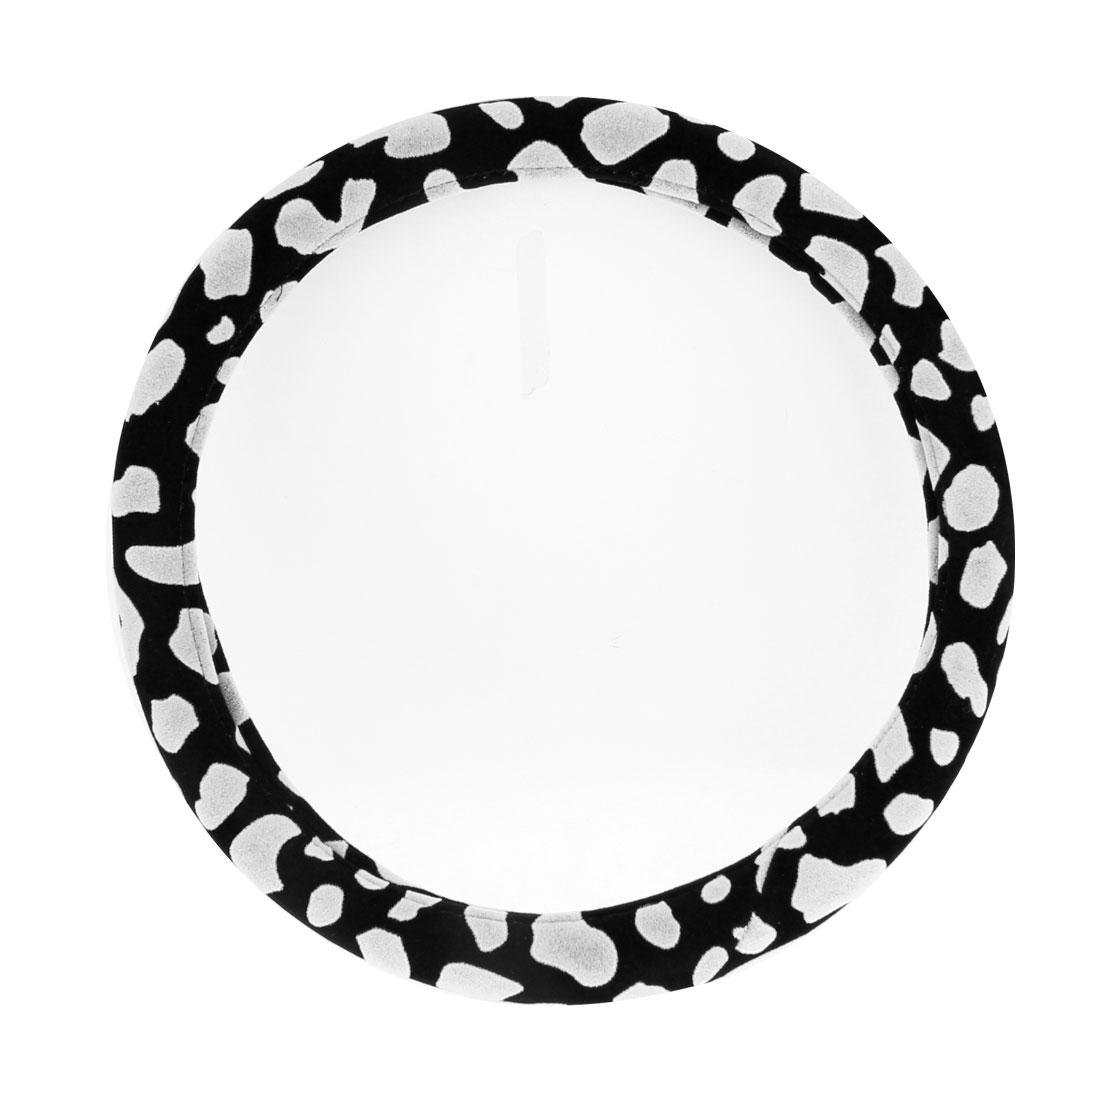 "Black White Velvet Coated Protective Steering Wheel Cover 36cm 14.2"" for Car"